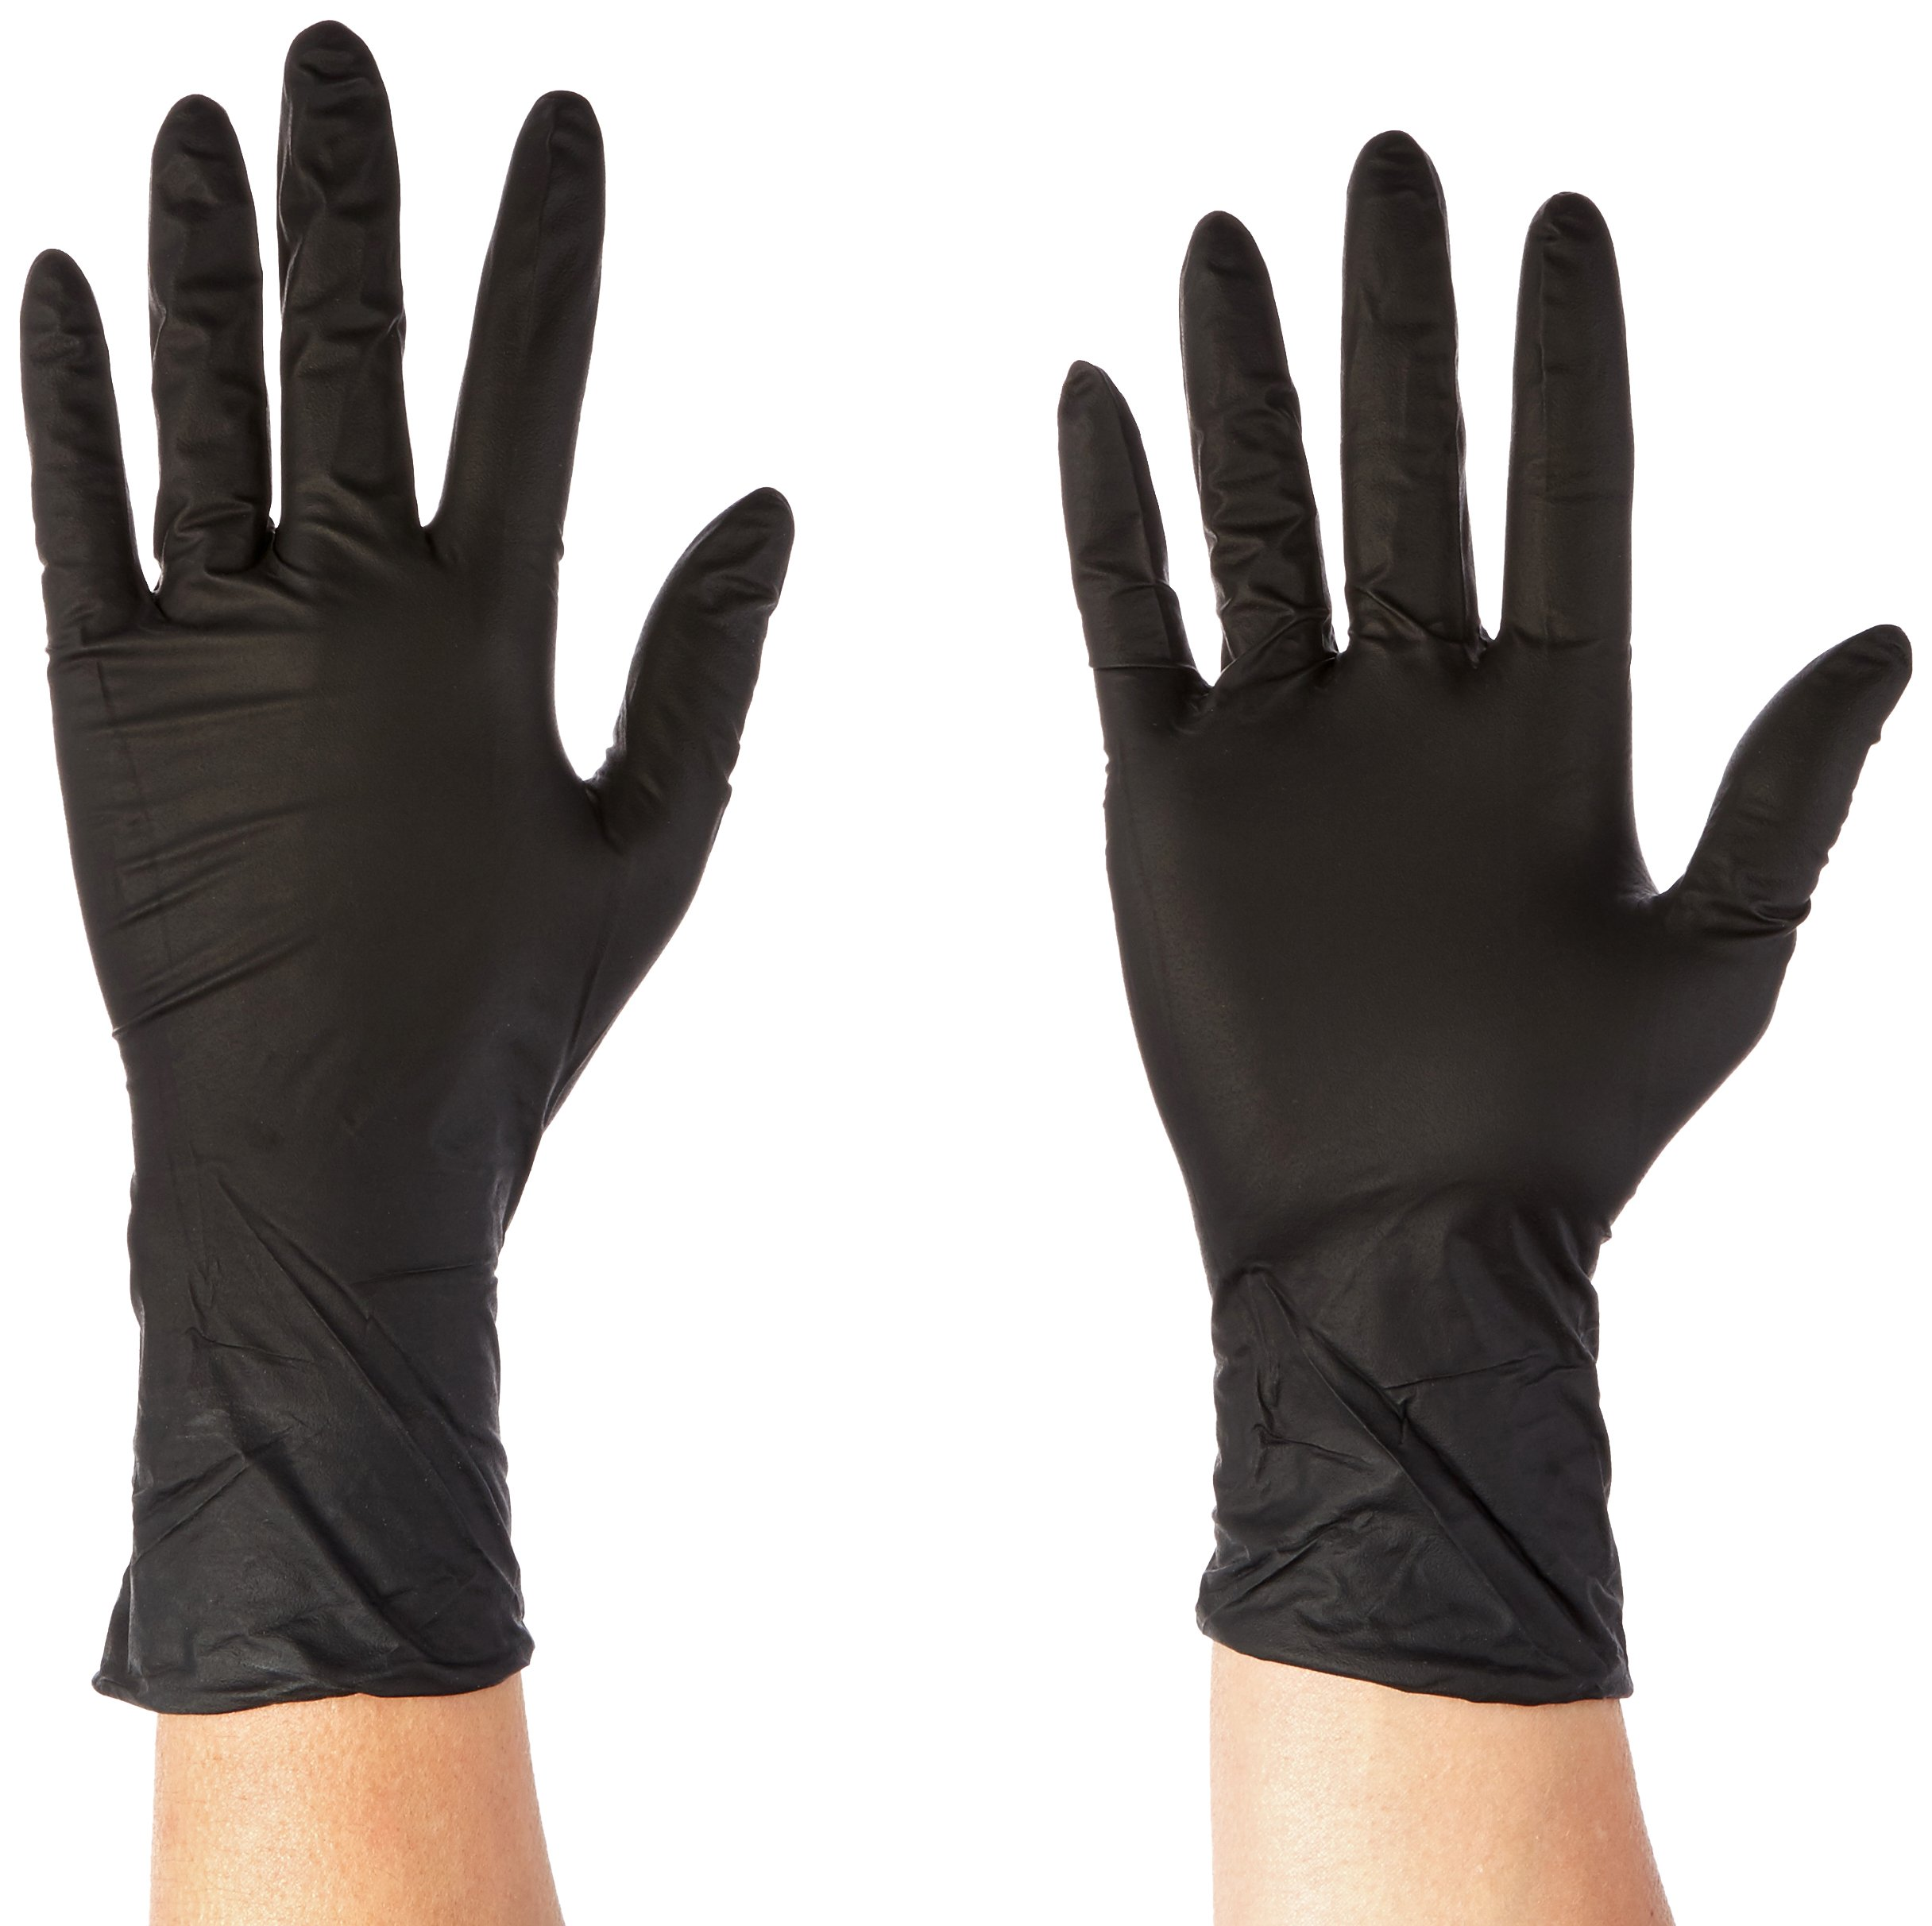 Microflex MK-296-XS MidKnight Powder-Free Examination Glove, 9.6'' Length, 3.1'' Cuff Thickness, 4.7'' Palm Thickness, 5.5'' Finger Thickness, X-Small, Black (Pack of 100)